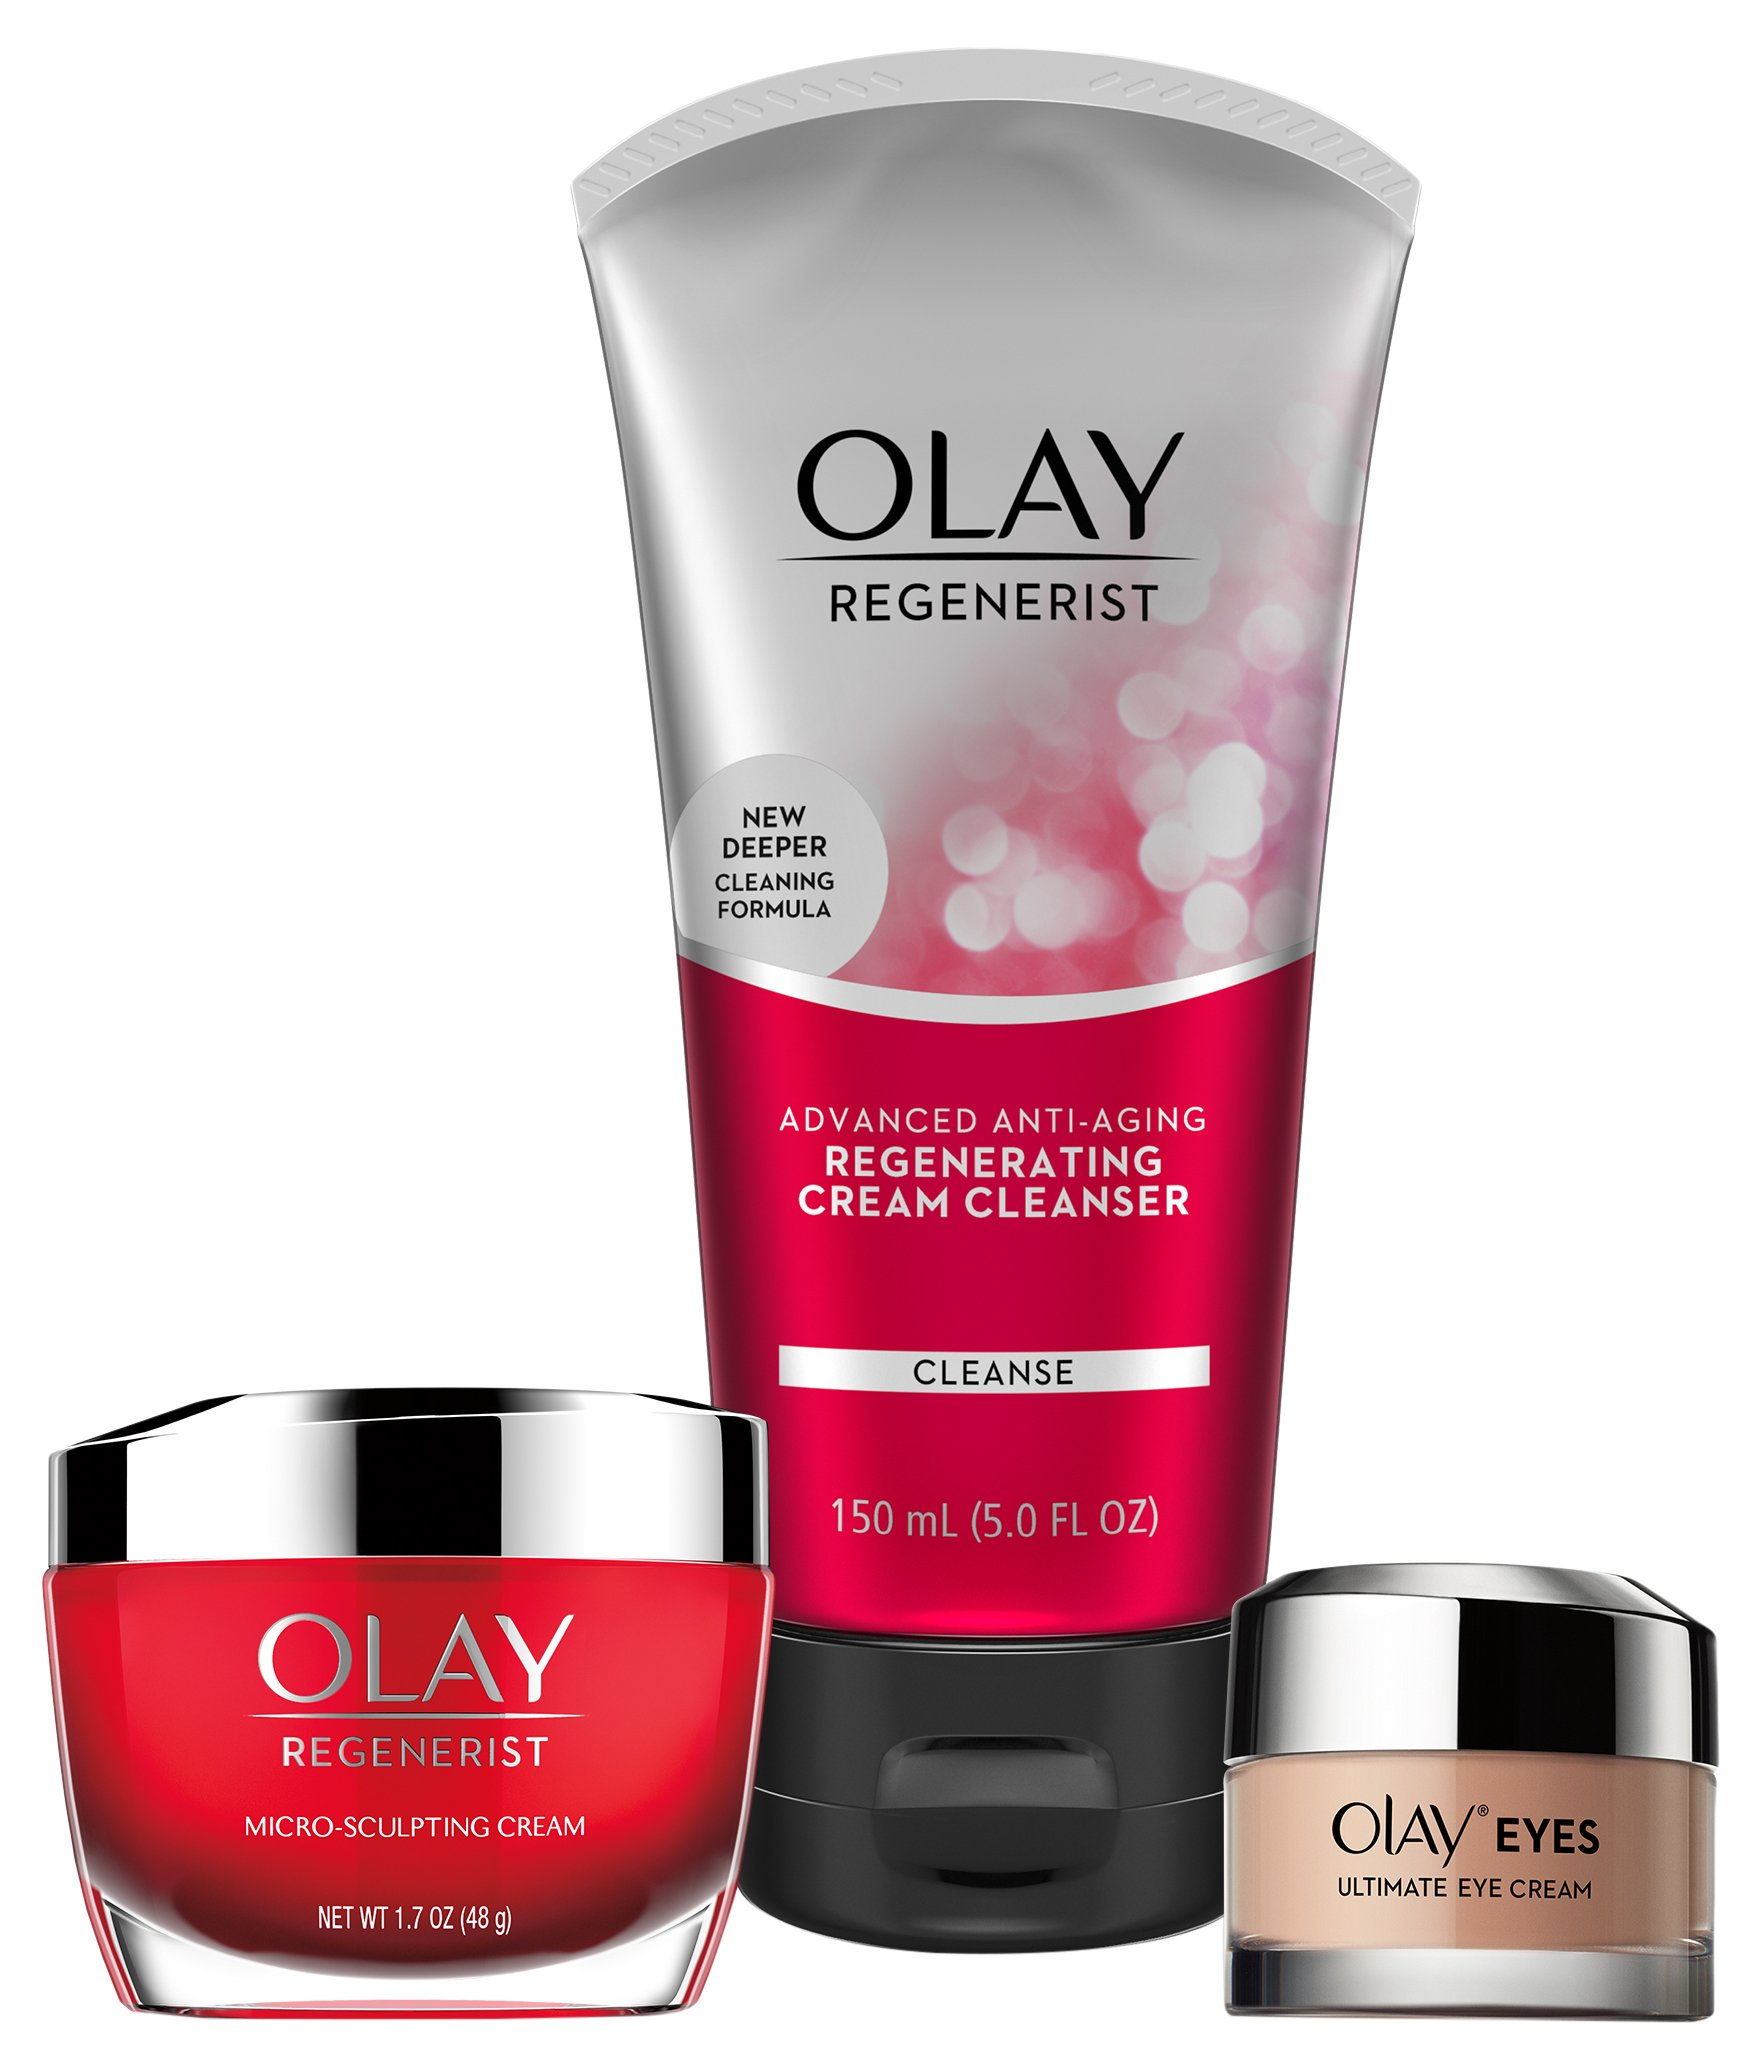 Face Wash by Olay Anti-Aging Skincare Kit with Regenerist Cleanser, Moisturizer & Eye Cream by Olay